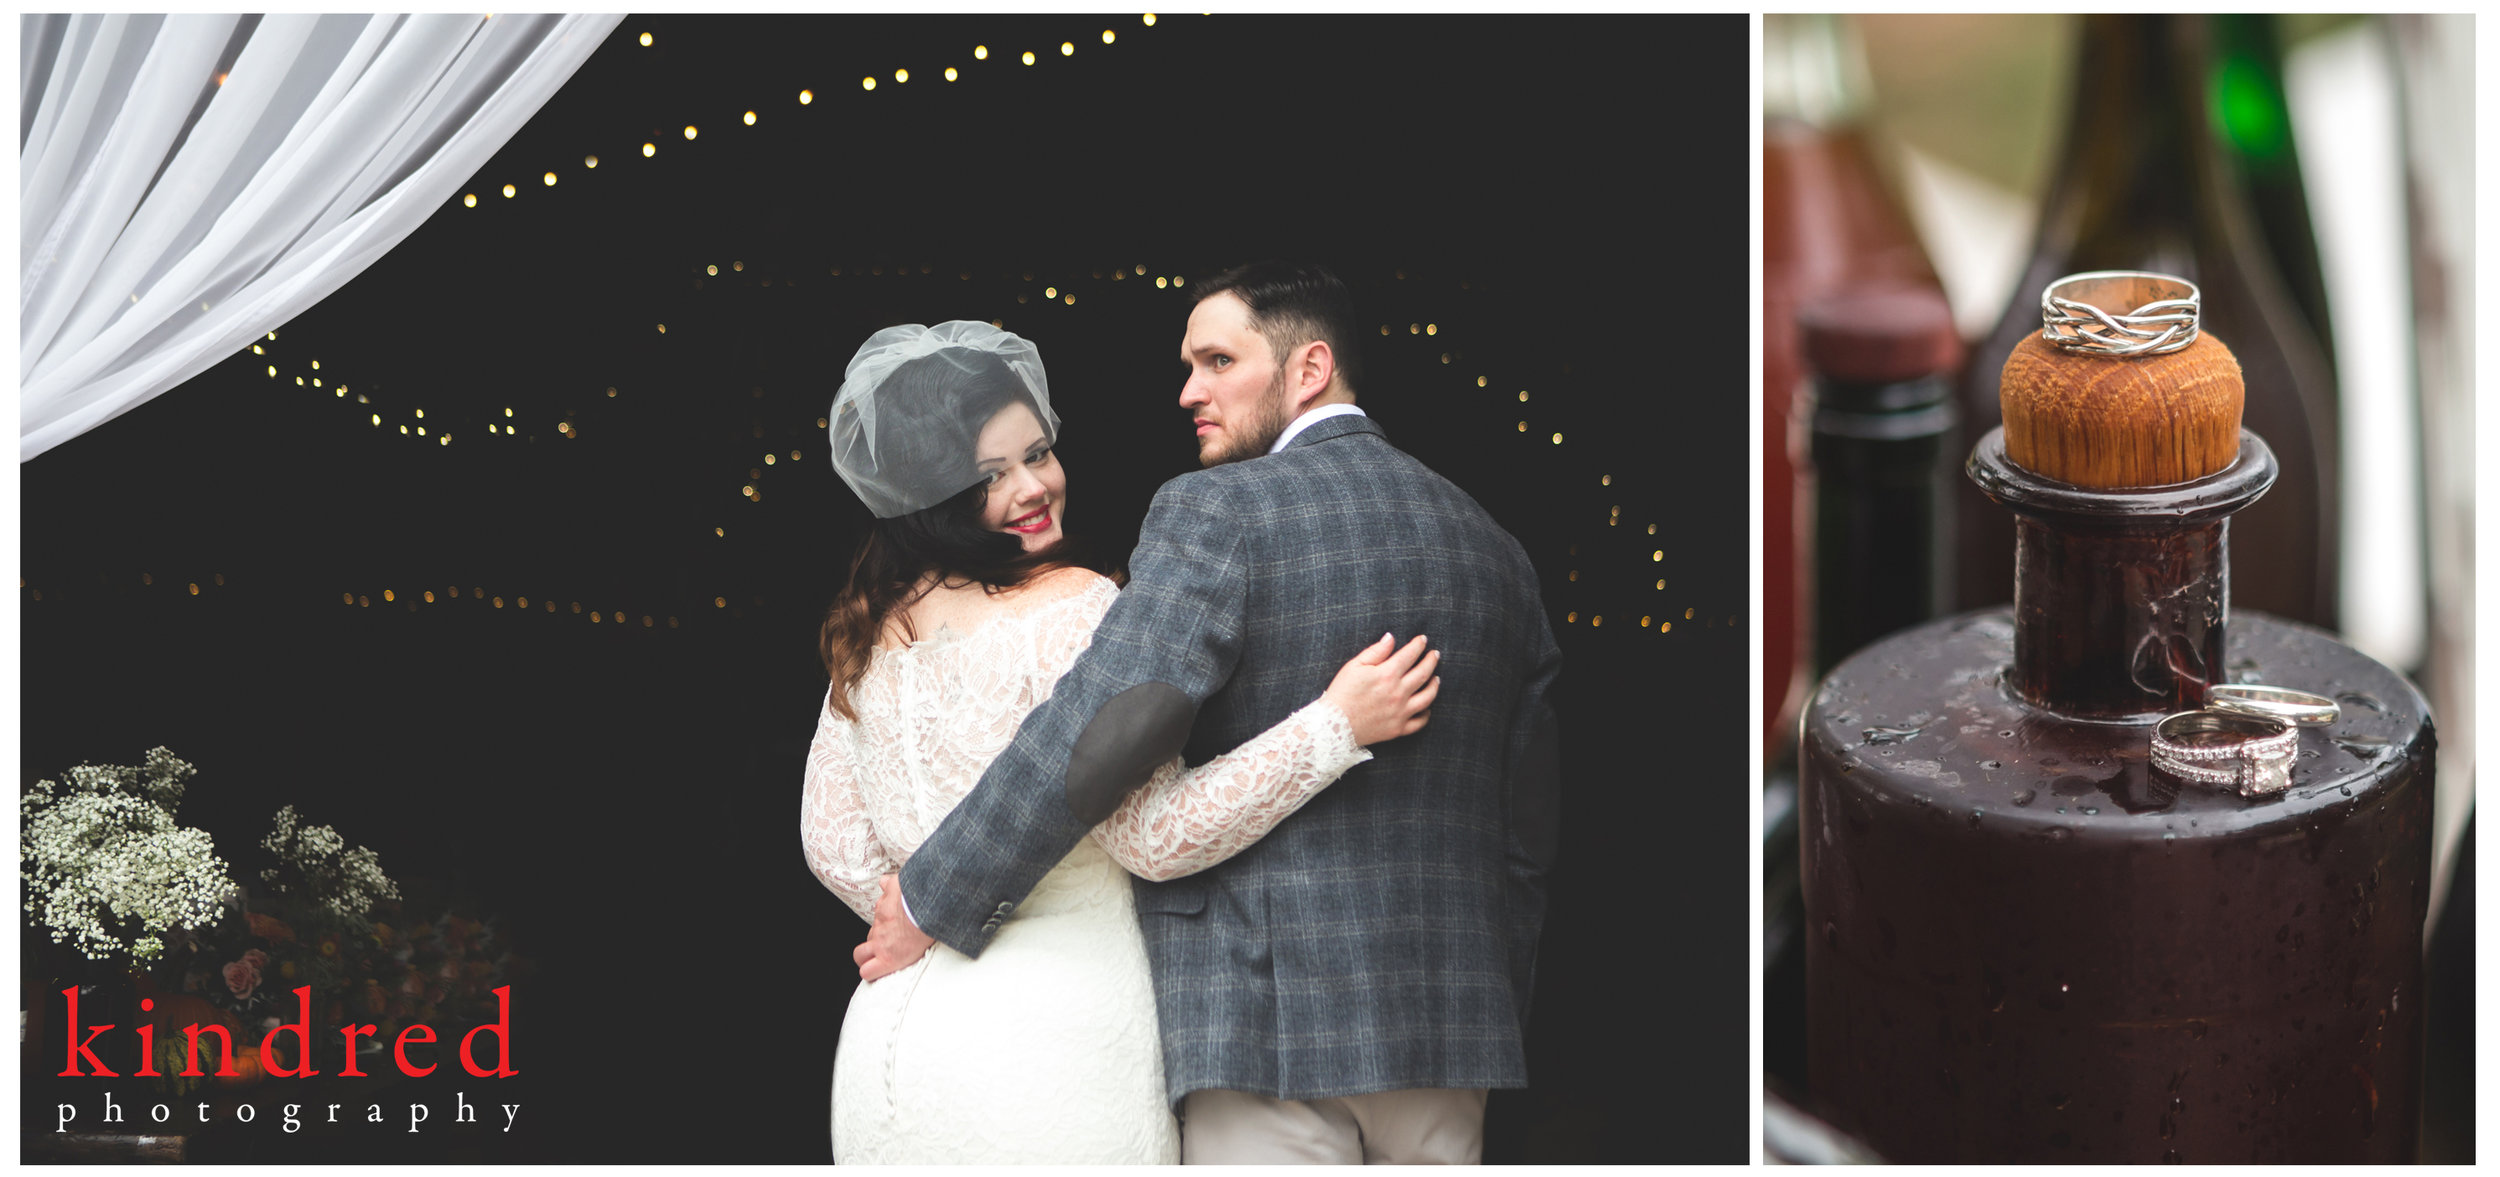 Kindred Photography is a husband and wife creative photography team. They see the hand of God in the beautiful moments in this world and are passionate about capturing those beautiful memories in your life.